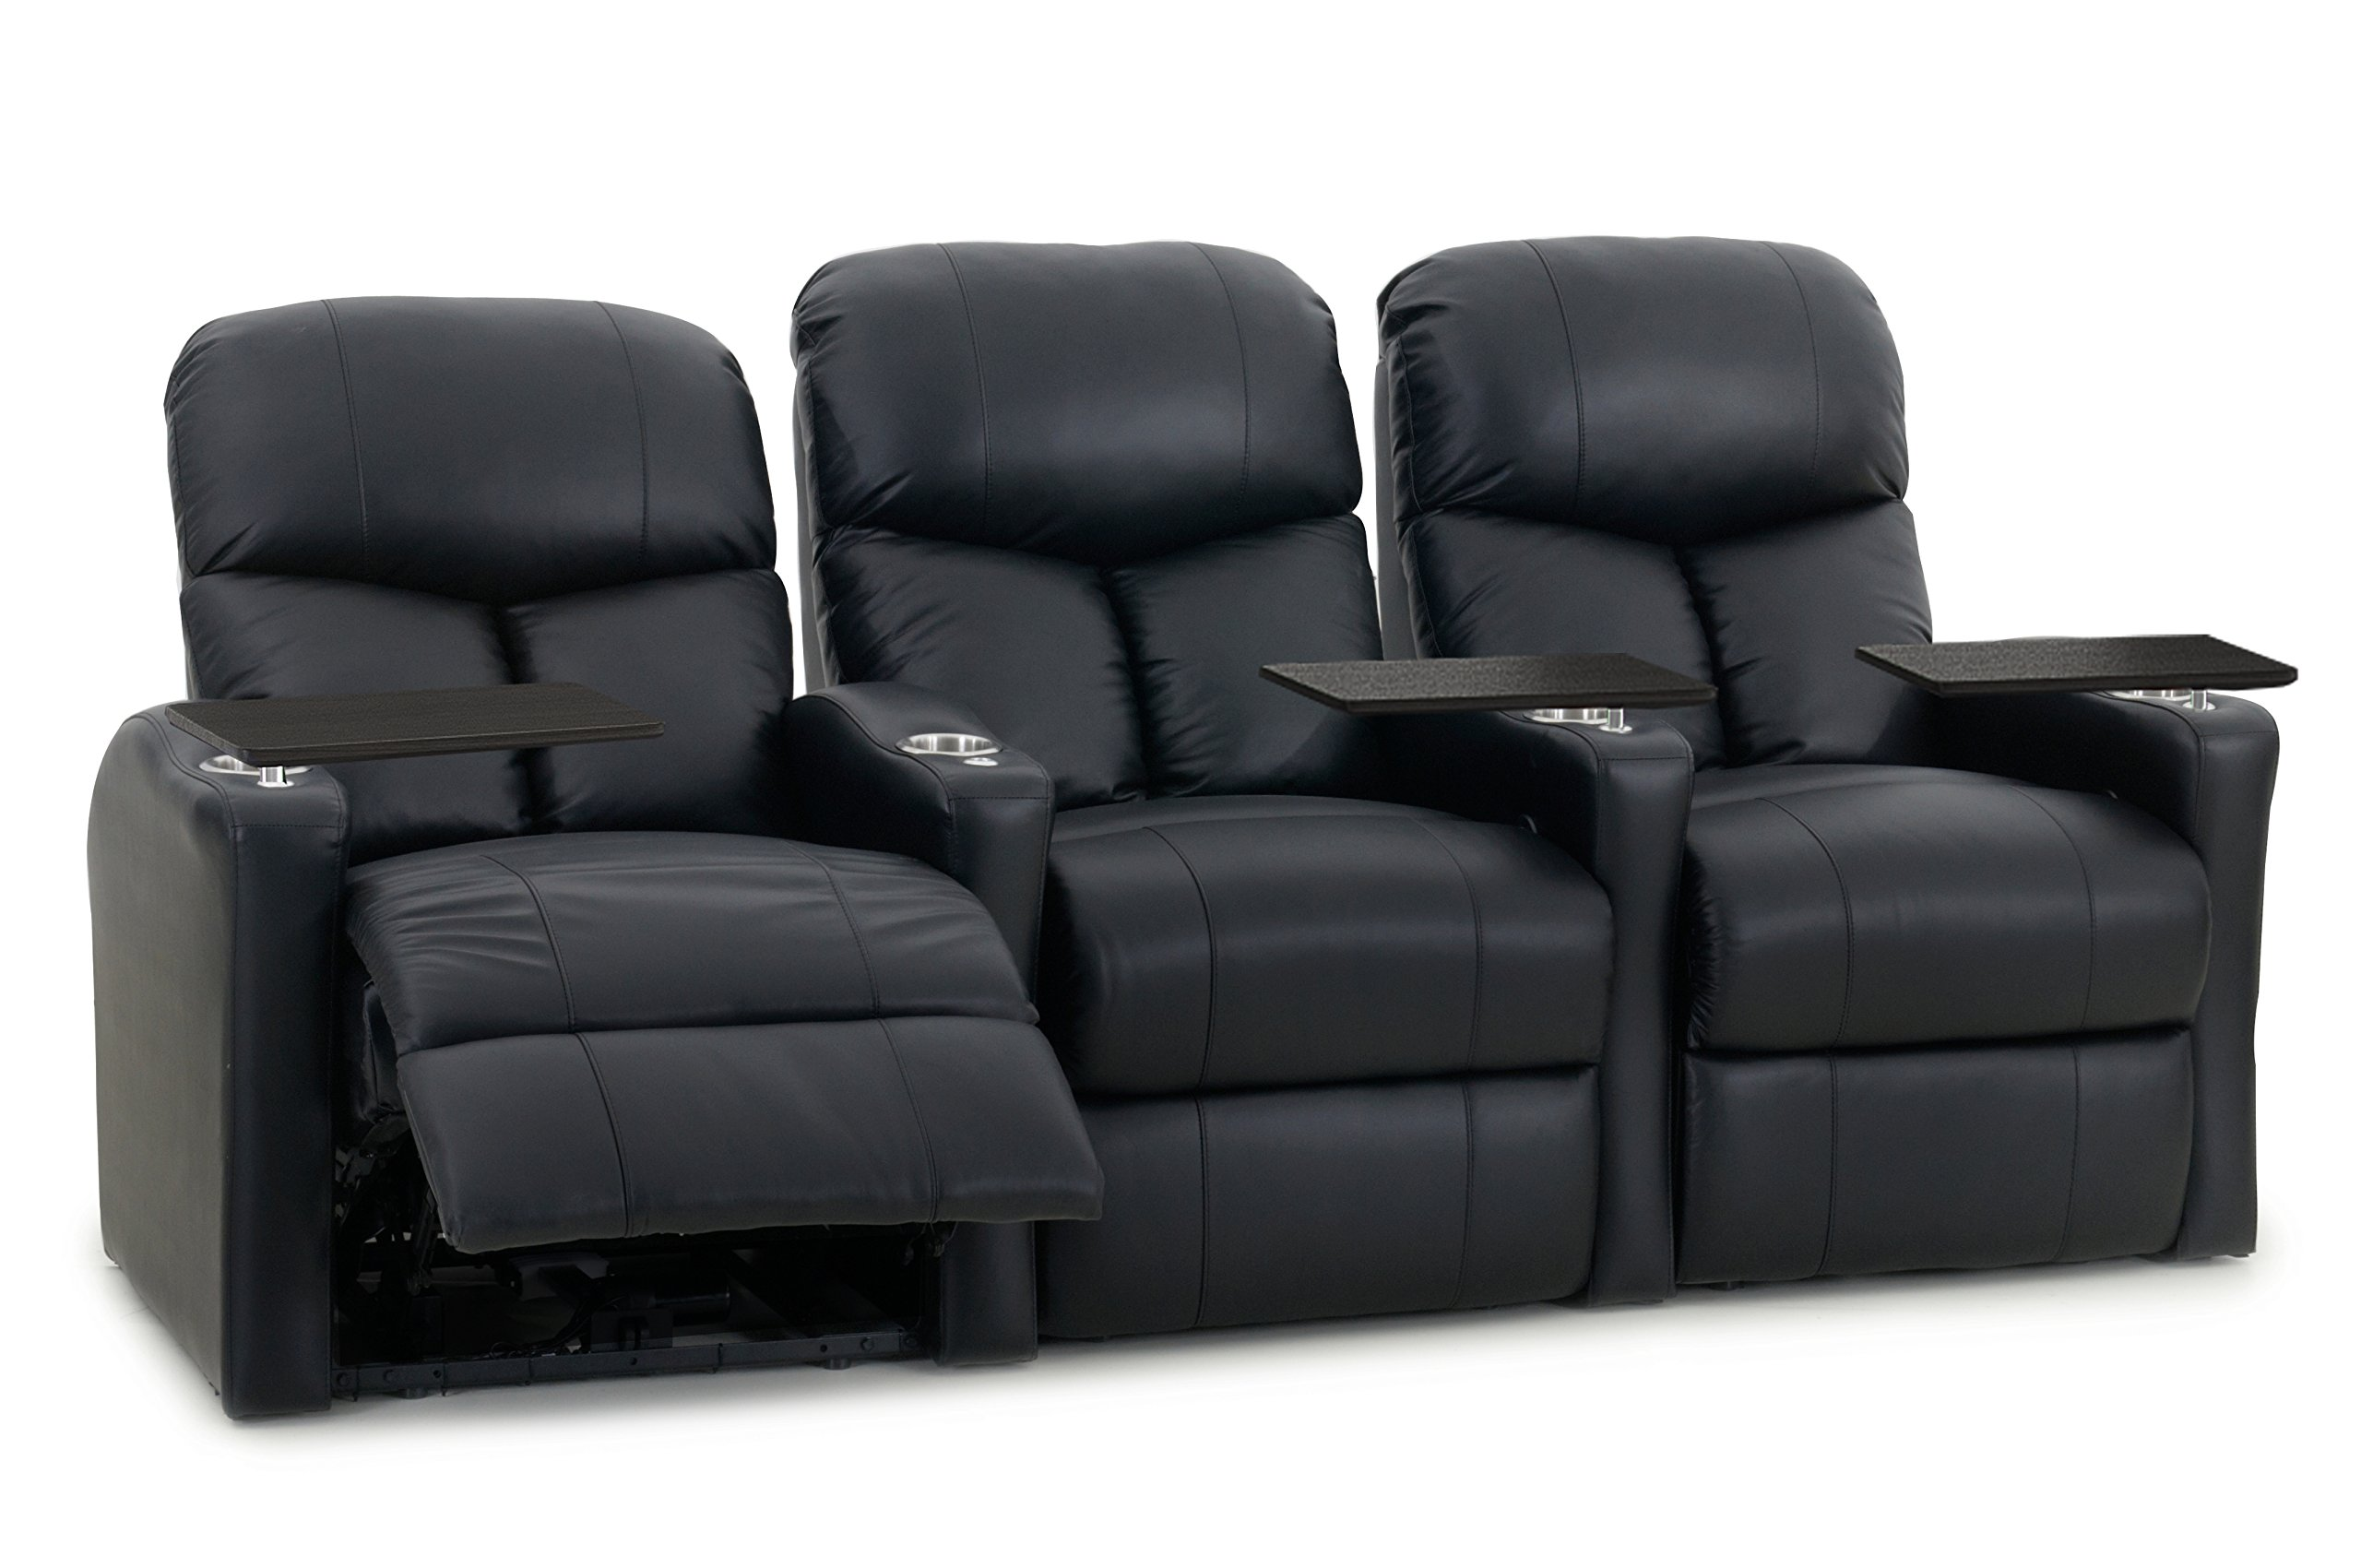 Octane Seating Octane Bolt XS400 Leather Home Theater Recliner Set (Row of 3) by Octane Seating